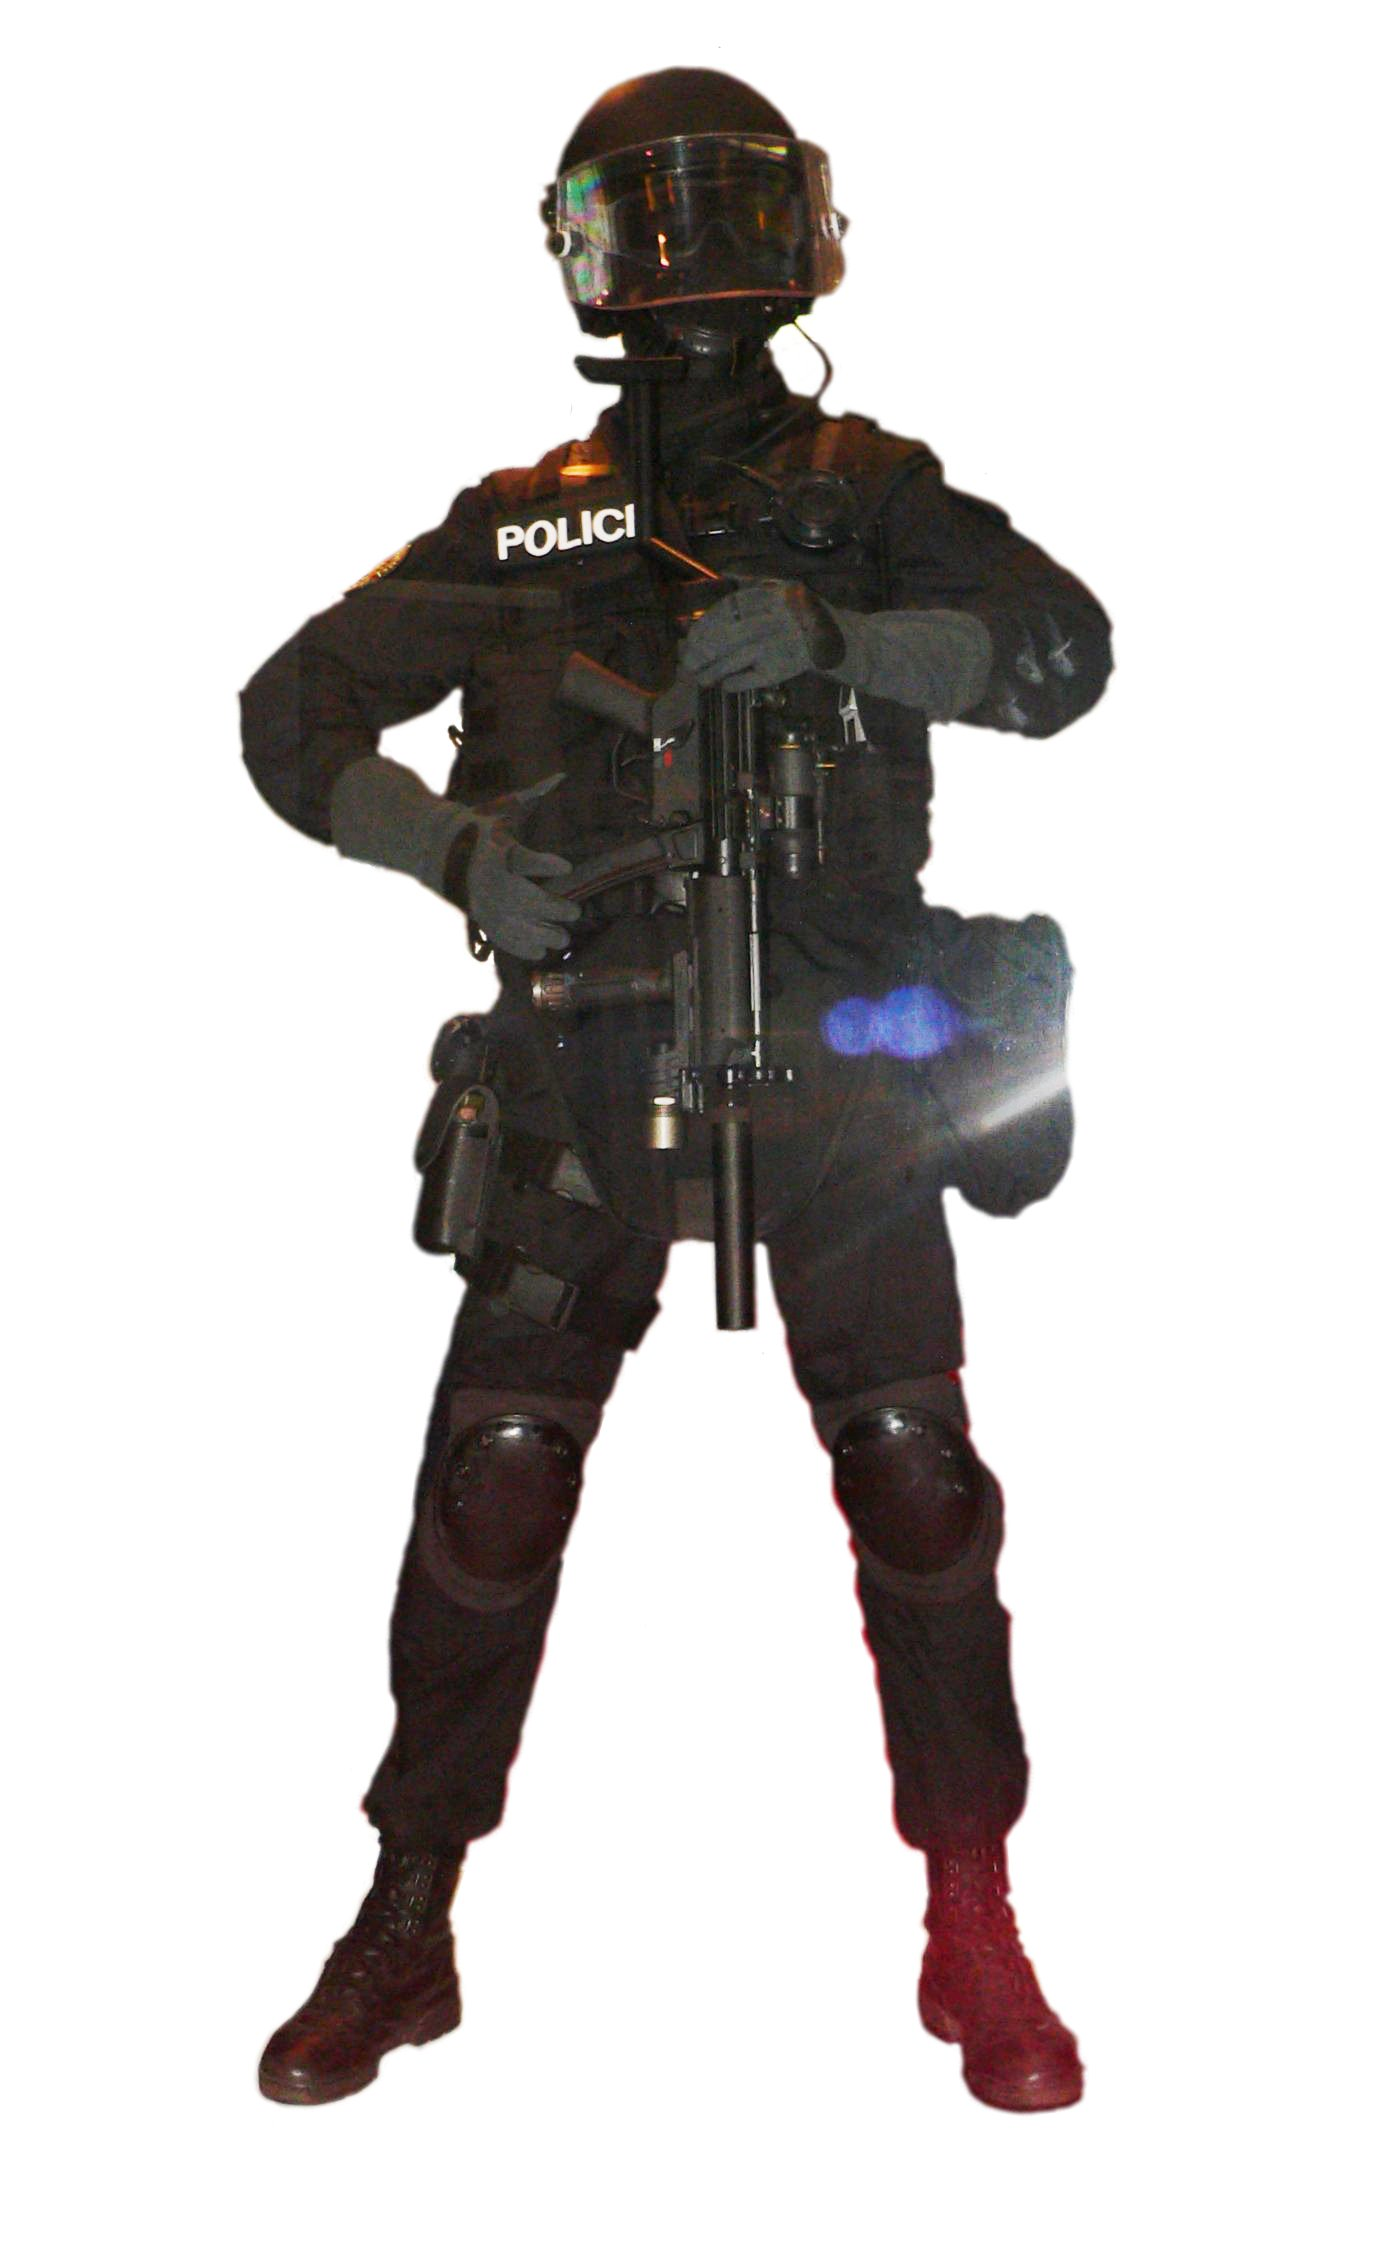 Police Car Lights, Emergency Vehicle Equipment, Tactical Police Gear, Apparel, Uniforms and Supply Store Shop Whelen, Federal Signal, Sound-off, Code-3, Propper, Tru-Spec, , Blackhawk and more Emergency Vehicle Lights, Police Car Equipment, Tactical Police Gear.